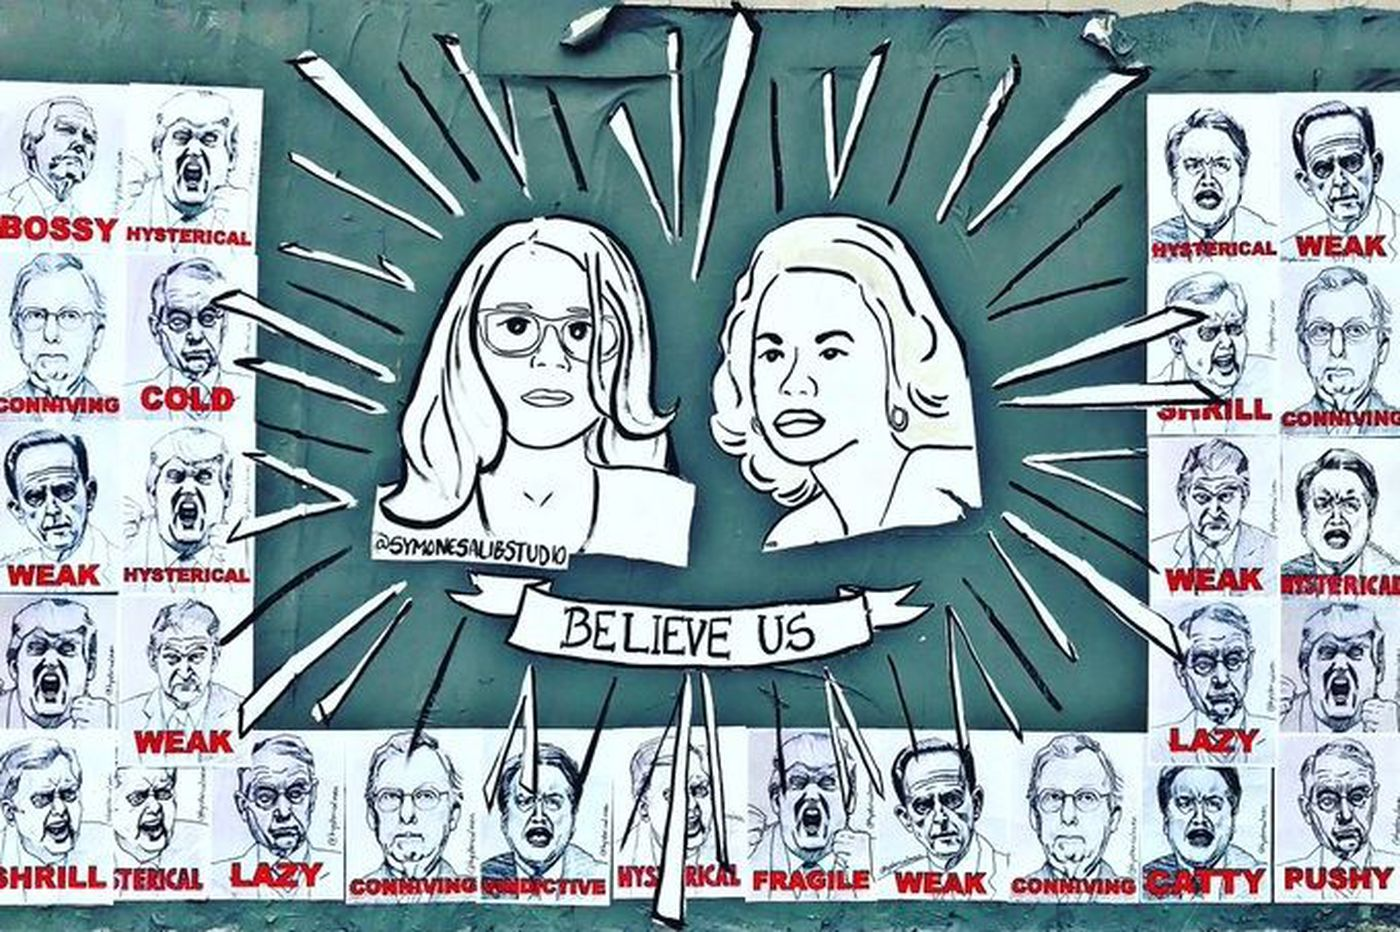 Philly's female street artists get political ahead of 2018 elections